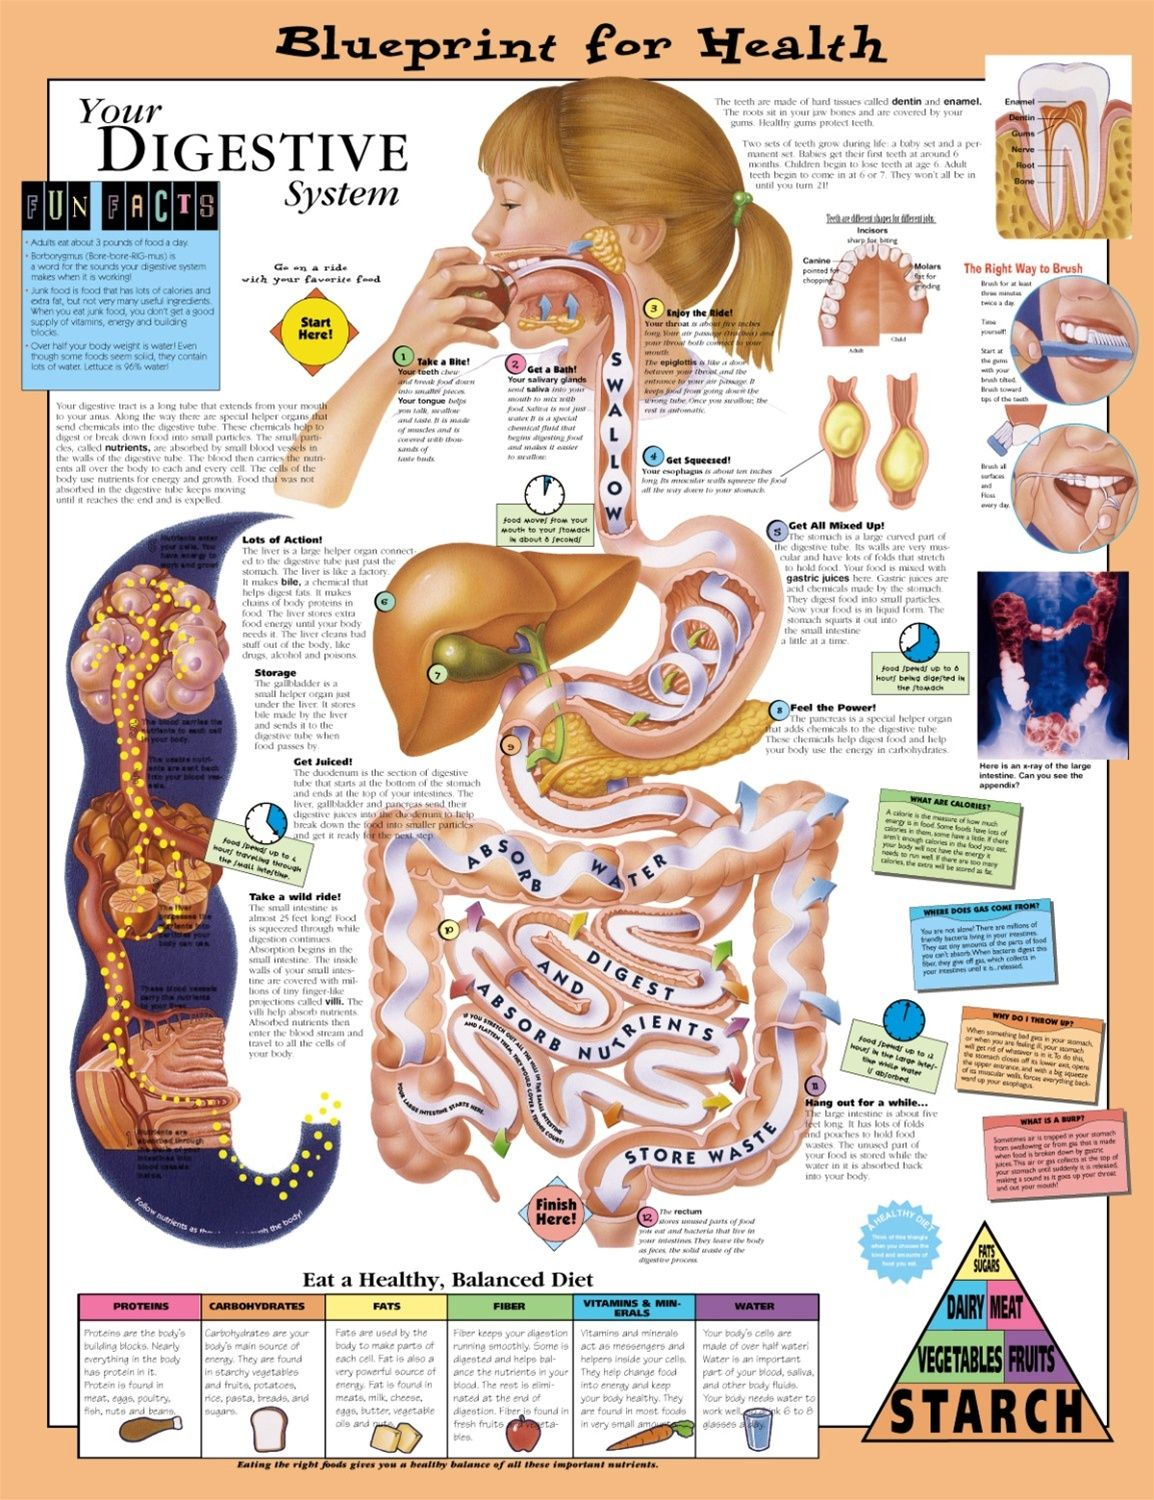 The Digestive System Kids Health 1 154 1 500 Pixels